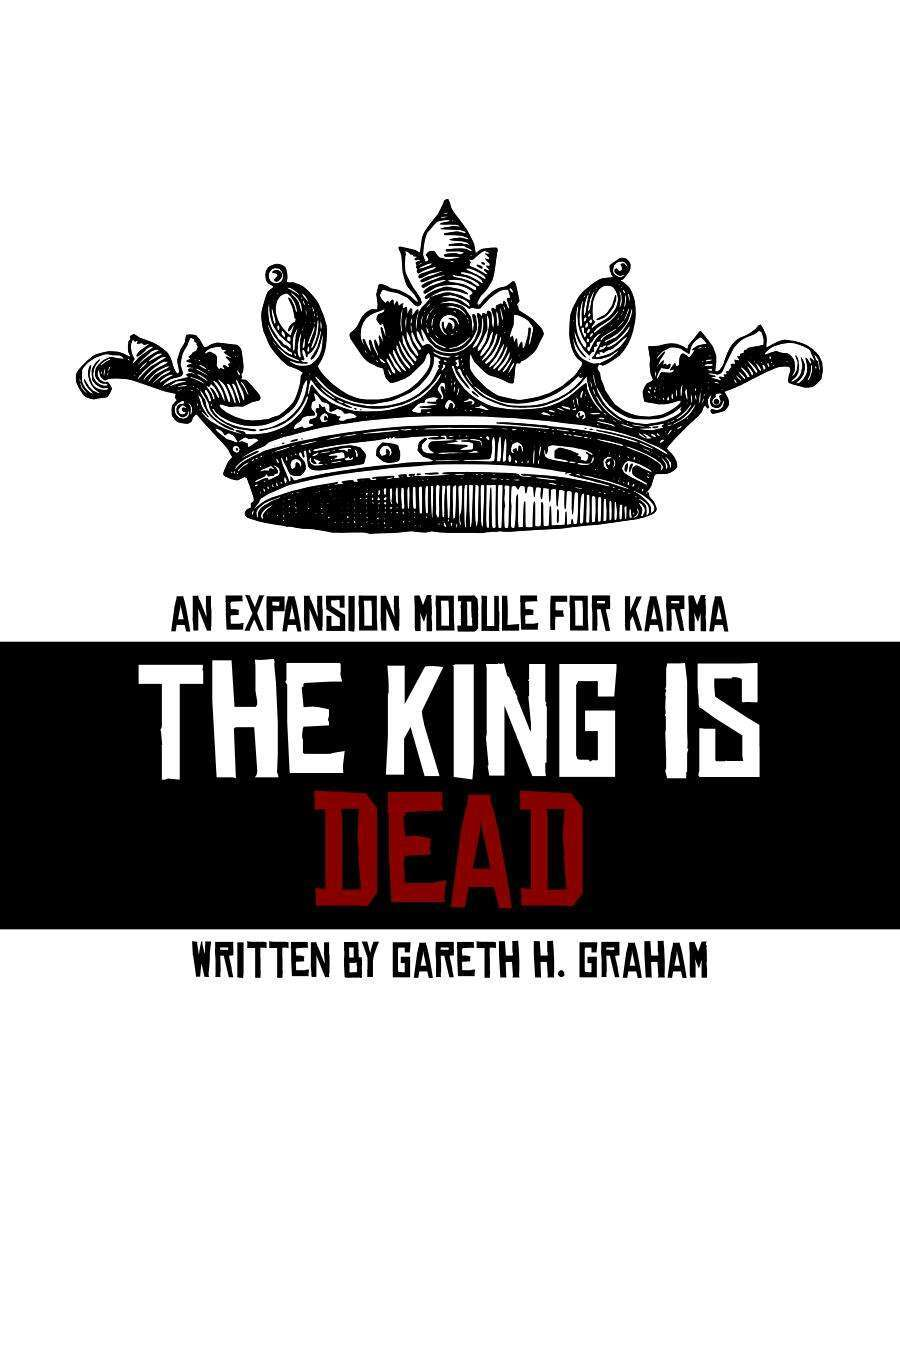 KARMA: The King is Dead